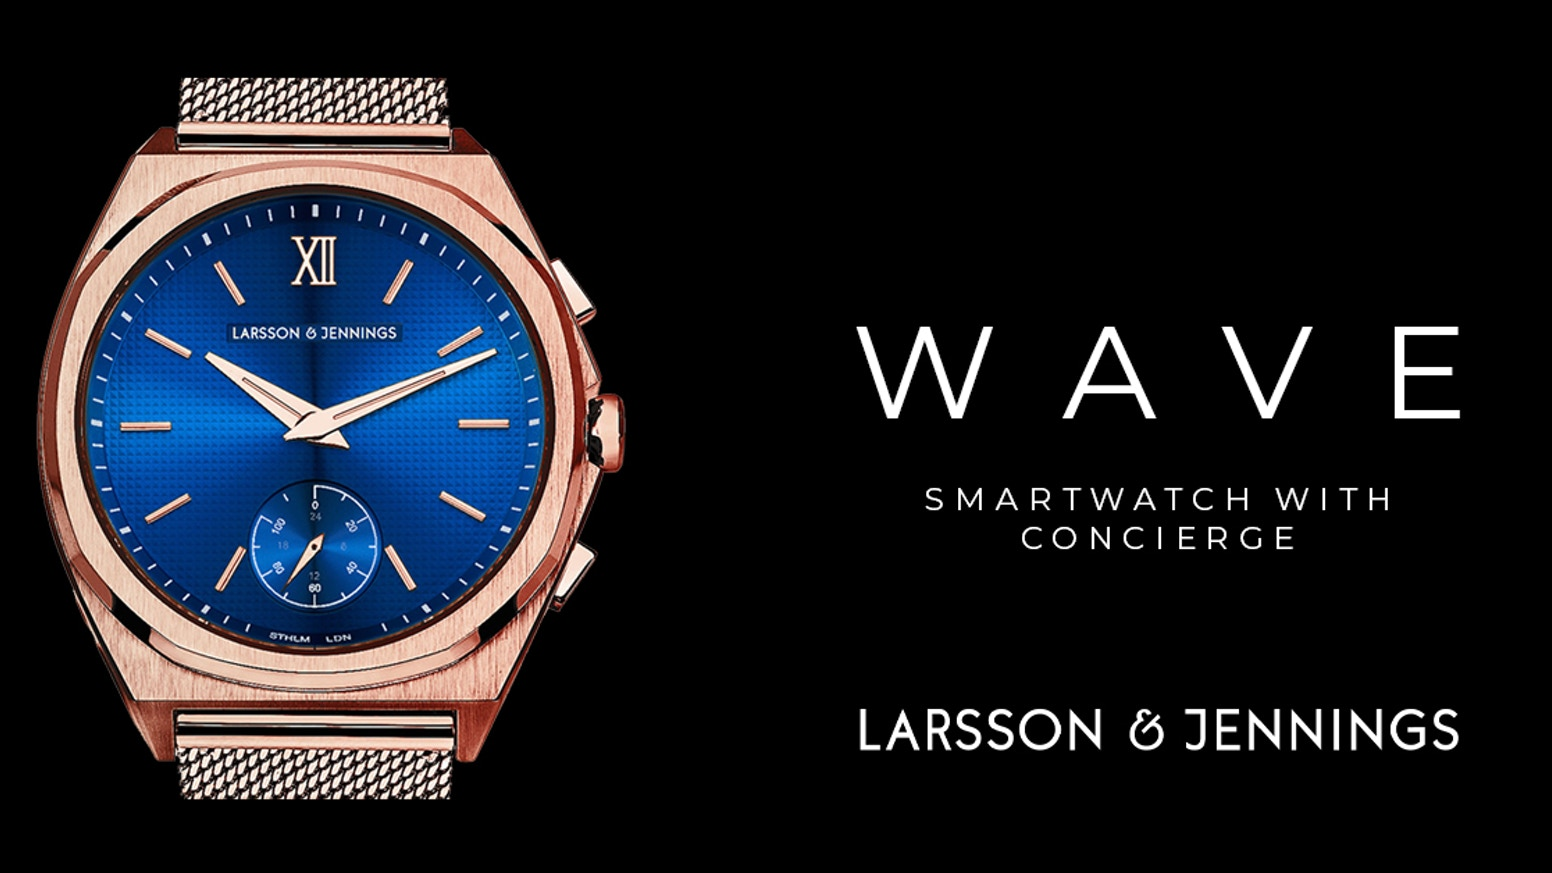 Luxurious design & specification with multi-function smart features - Fitness | Music | Notifications | Apps by Larsson & Jennings